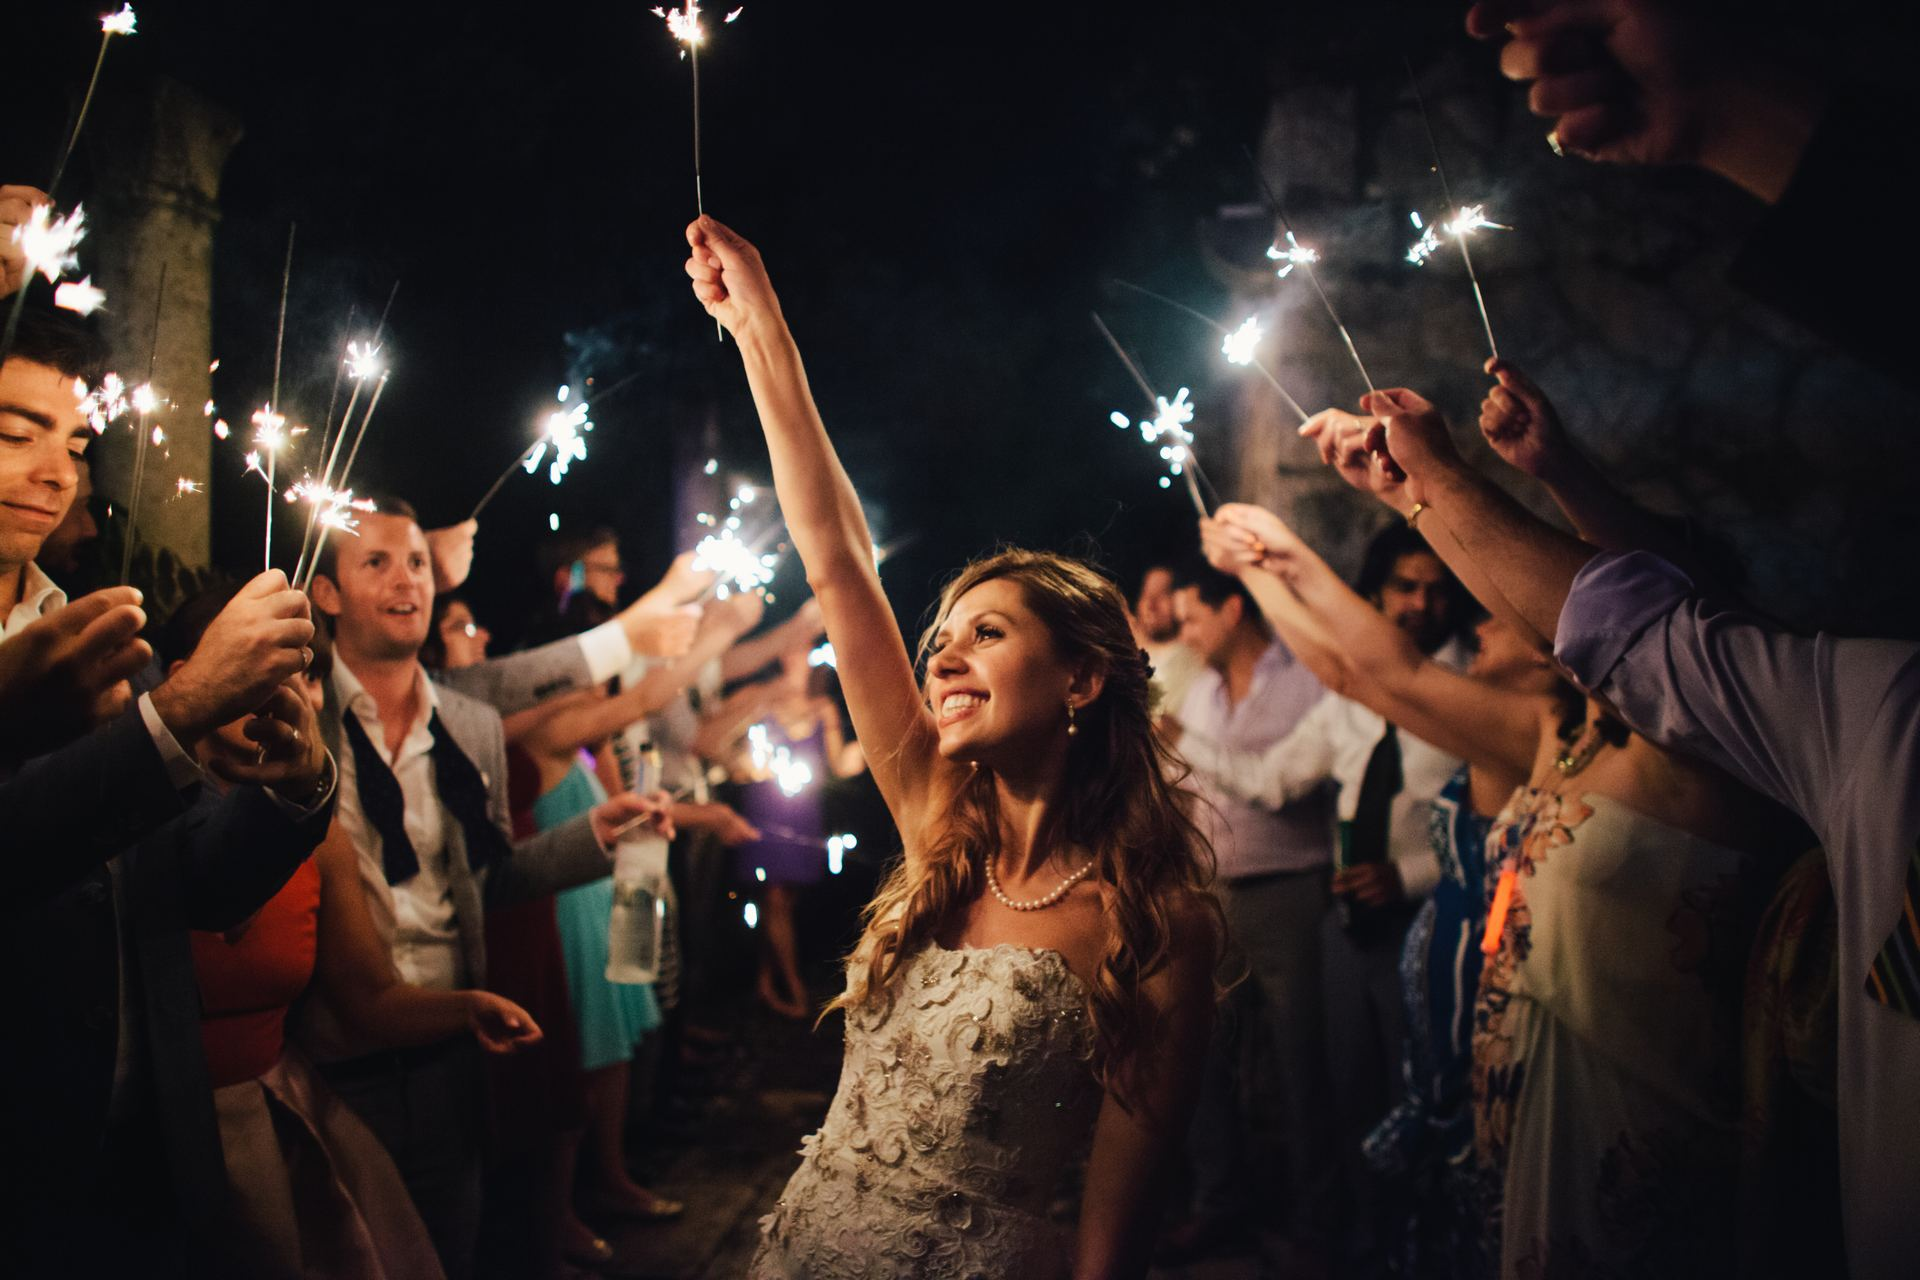 wedding photographer | homepage | 016 | sparklers